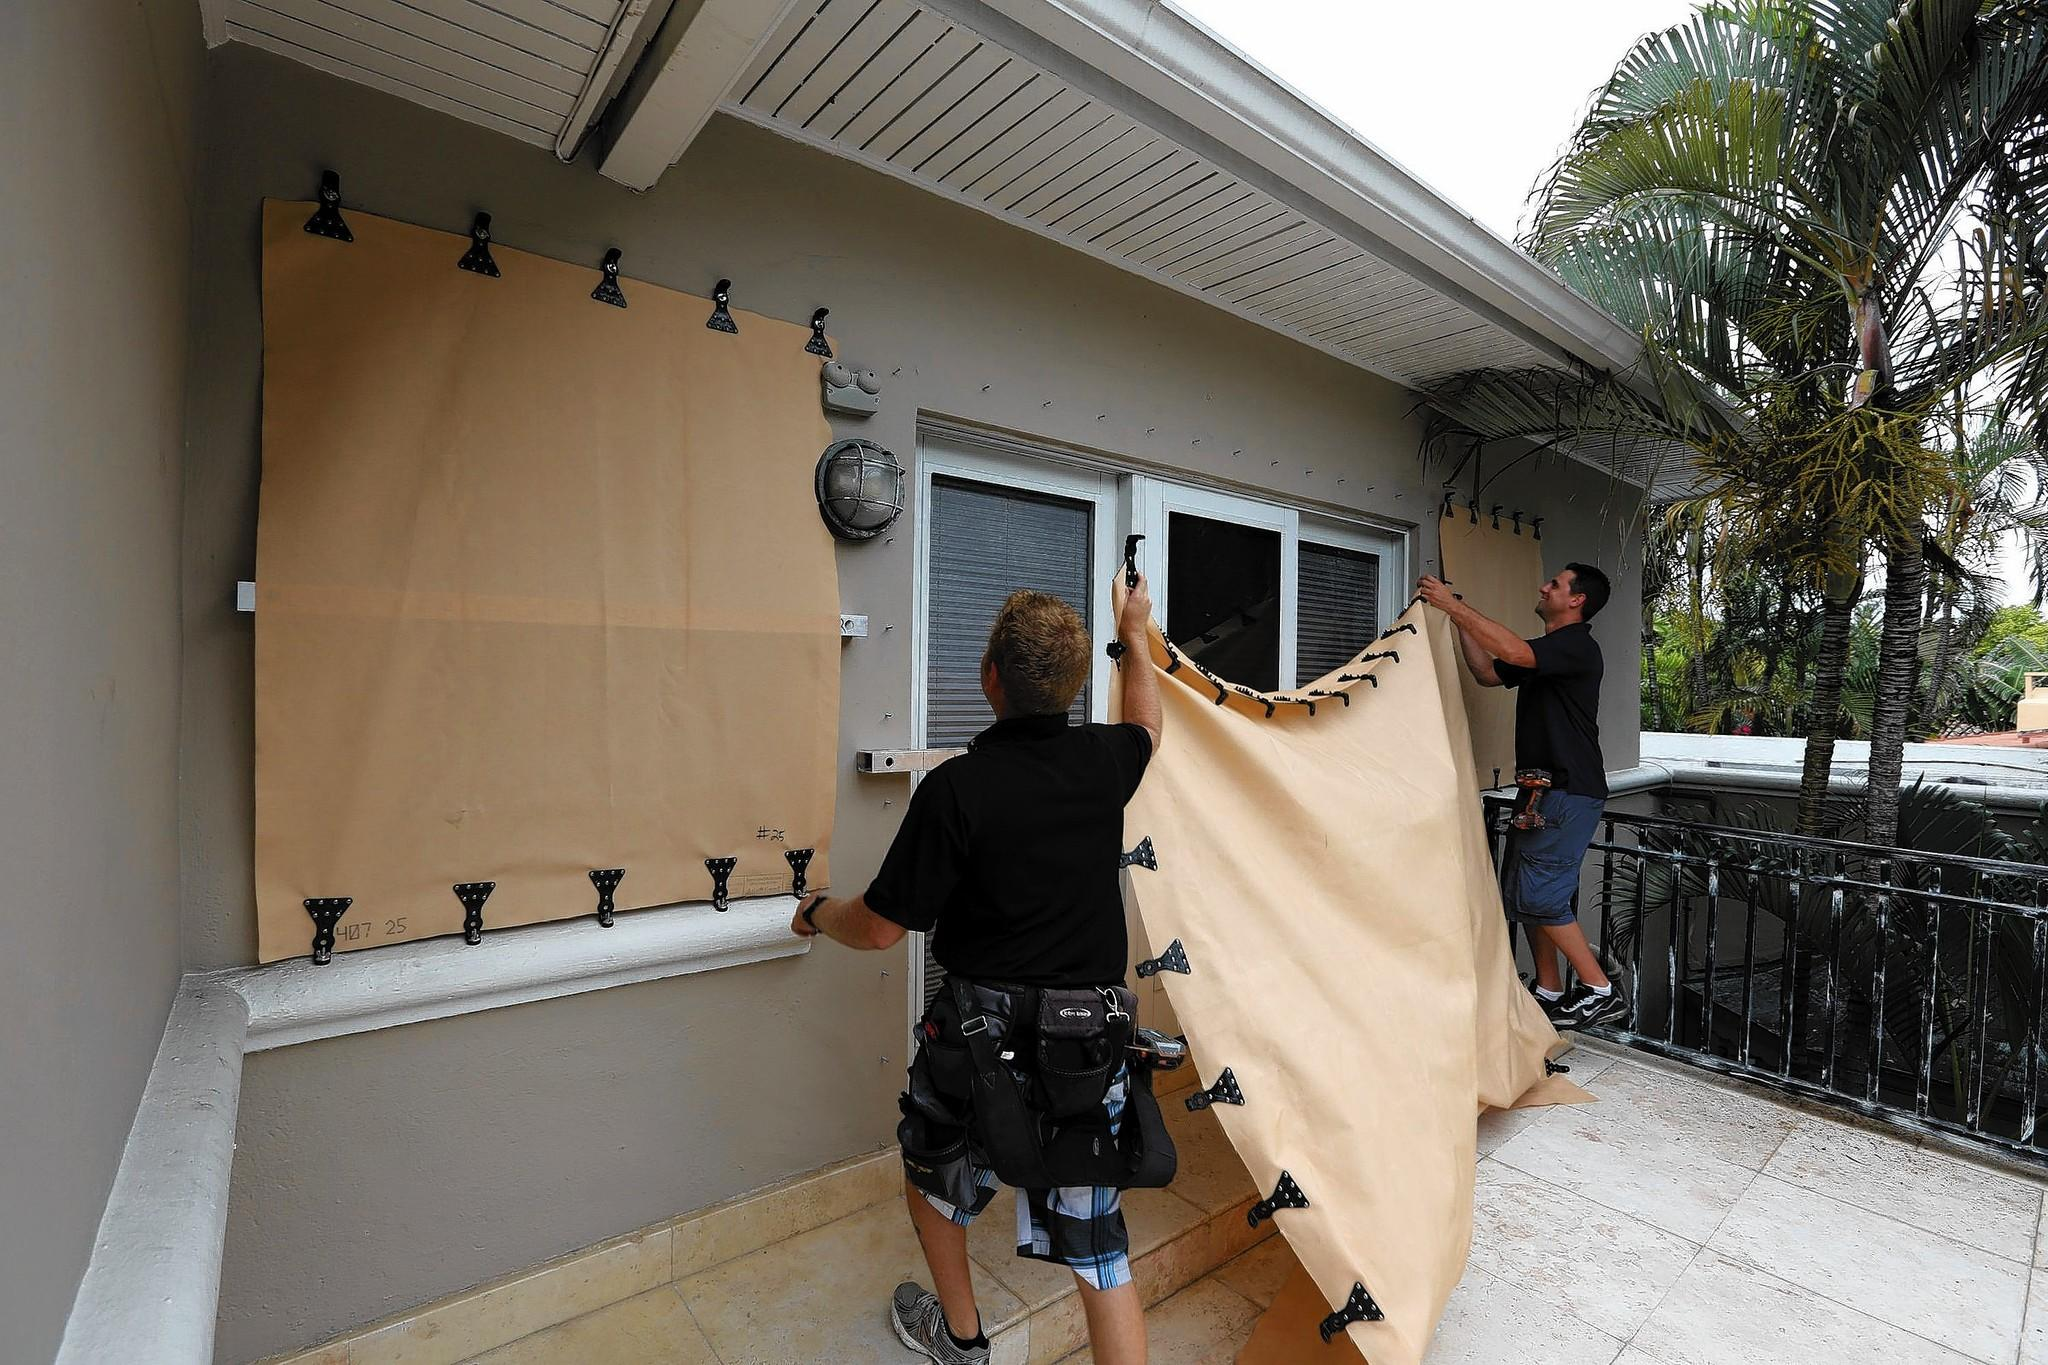 Brandon Susich, right, and Albert Petrello install fabric storm shutters on a home in Miami Beach, Florida, on June 1, 2013.